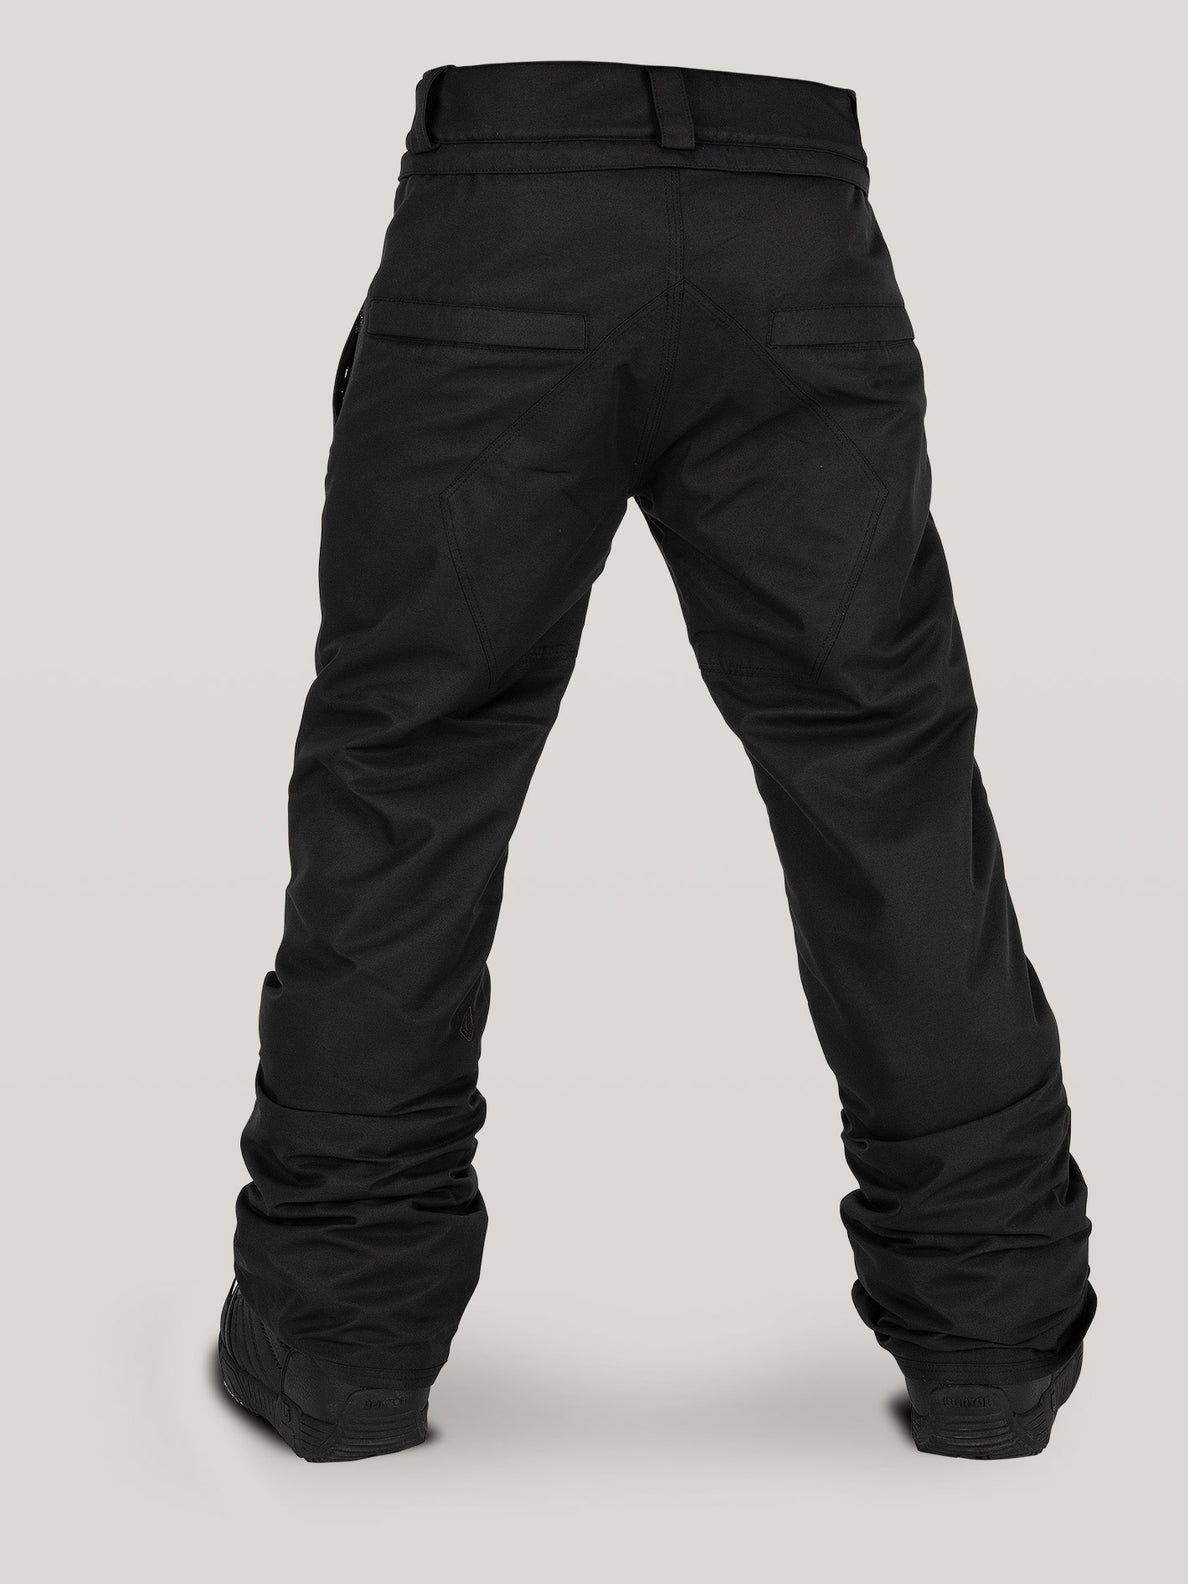 Boys Youth Freakin Snow Chino Pant - Black